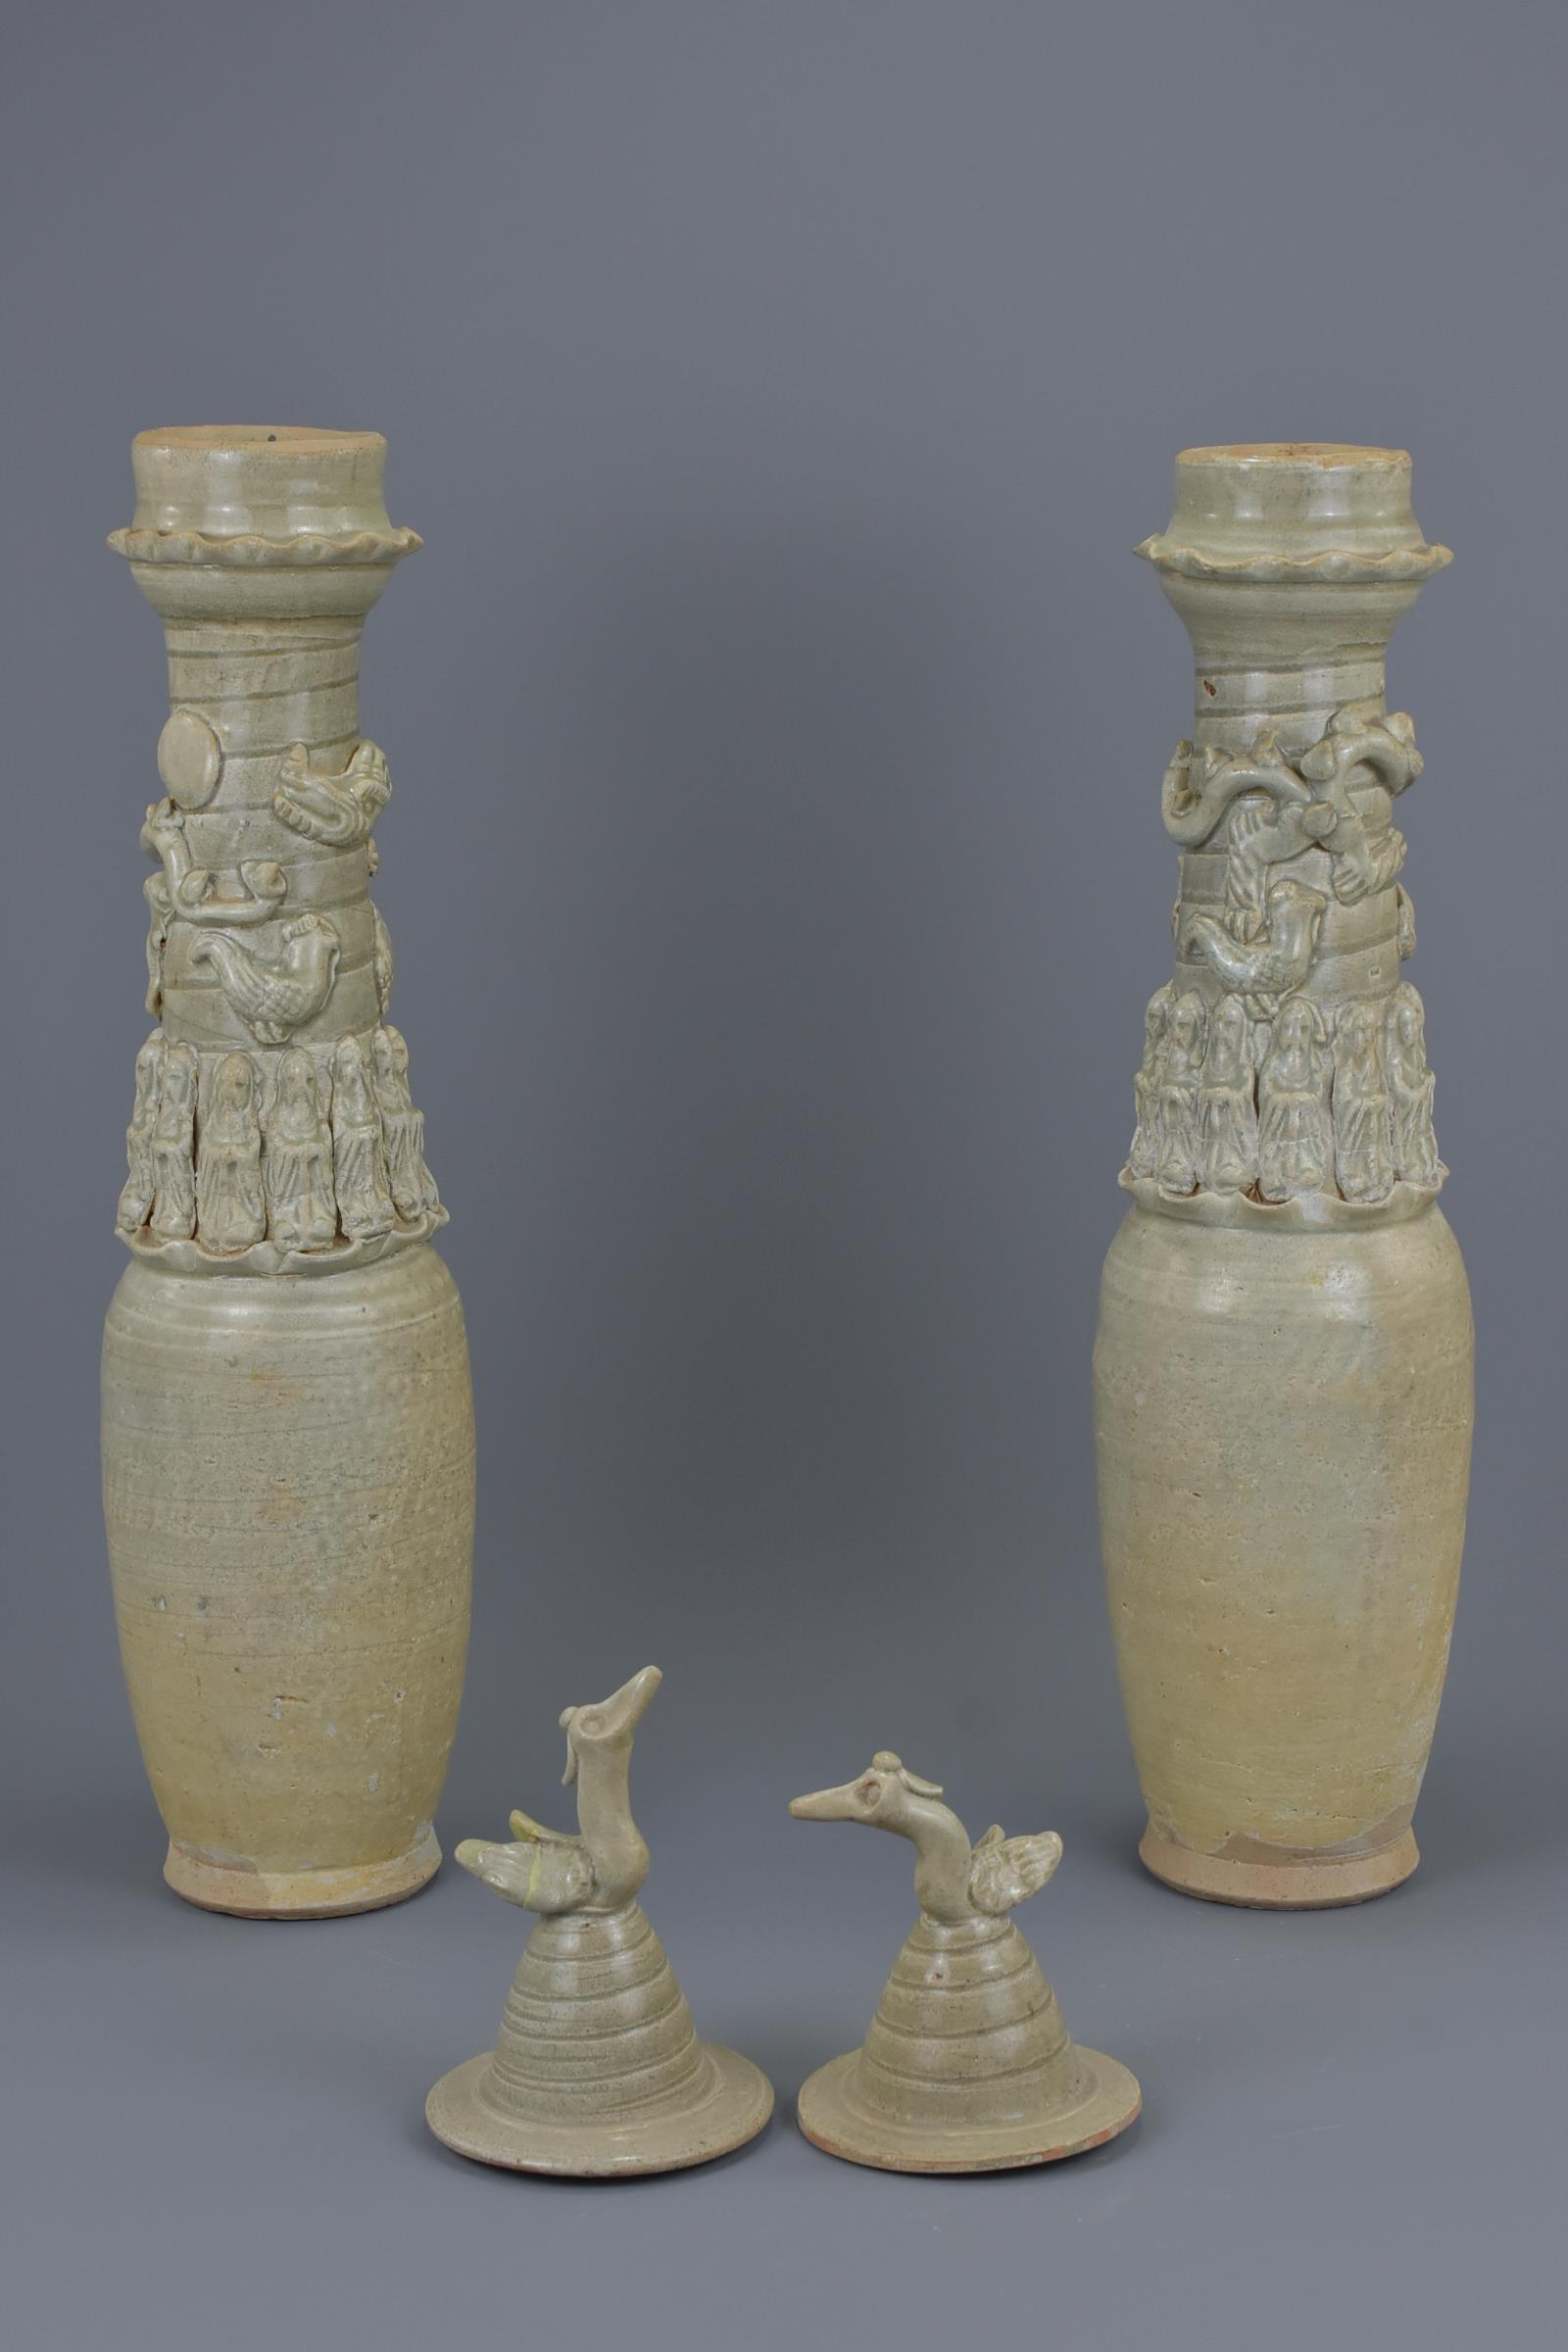 Lot 32 - A Pair of Tall Chinese Song Dynasty Qingbai Porcelain Dragon Vases